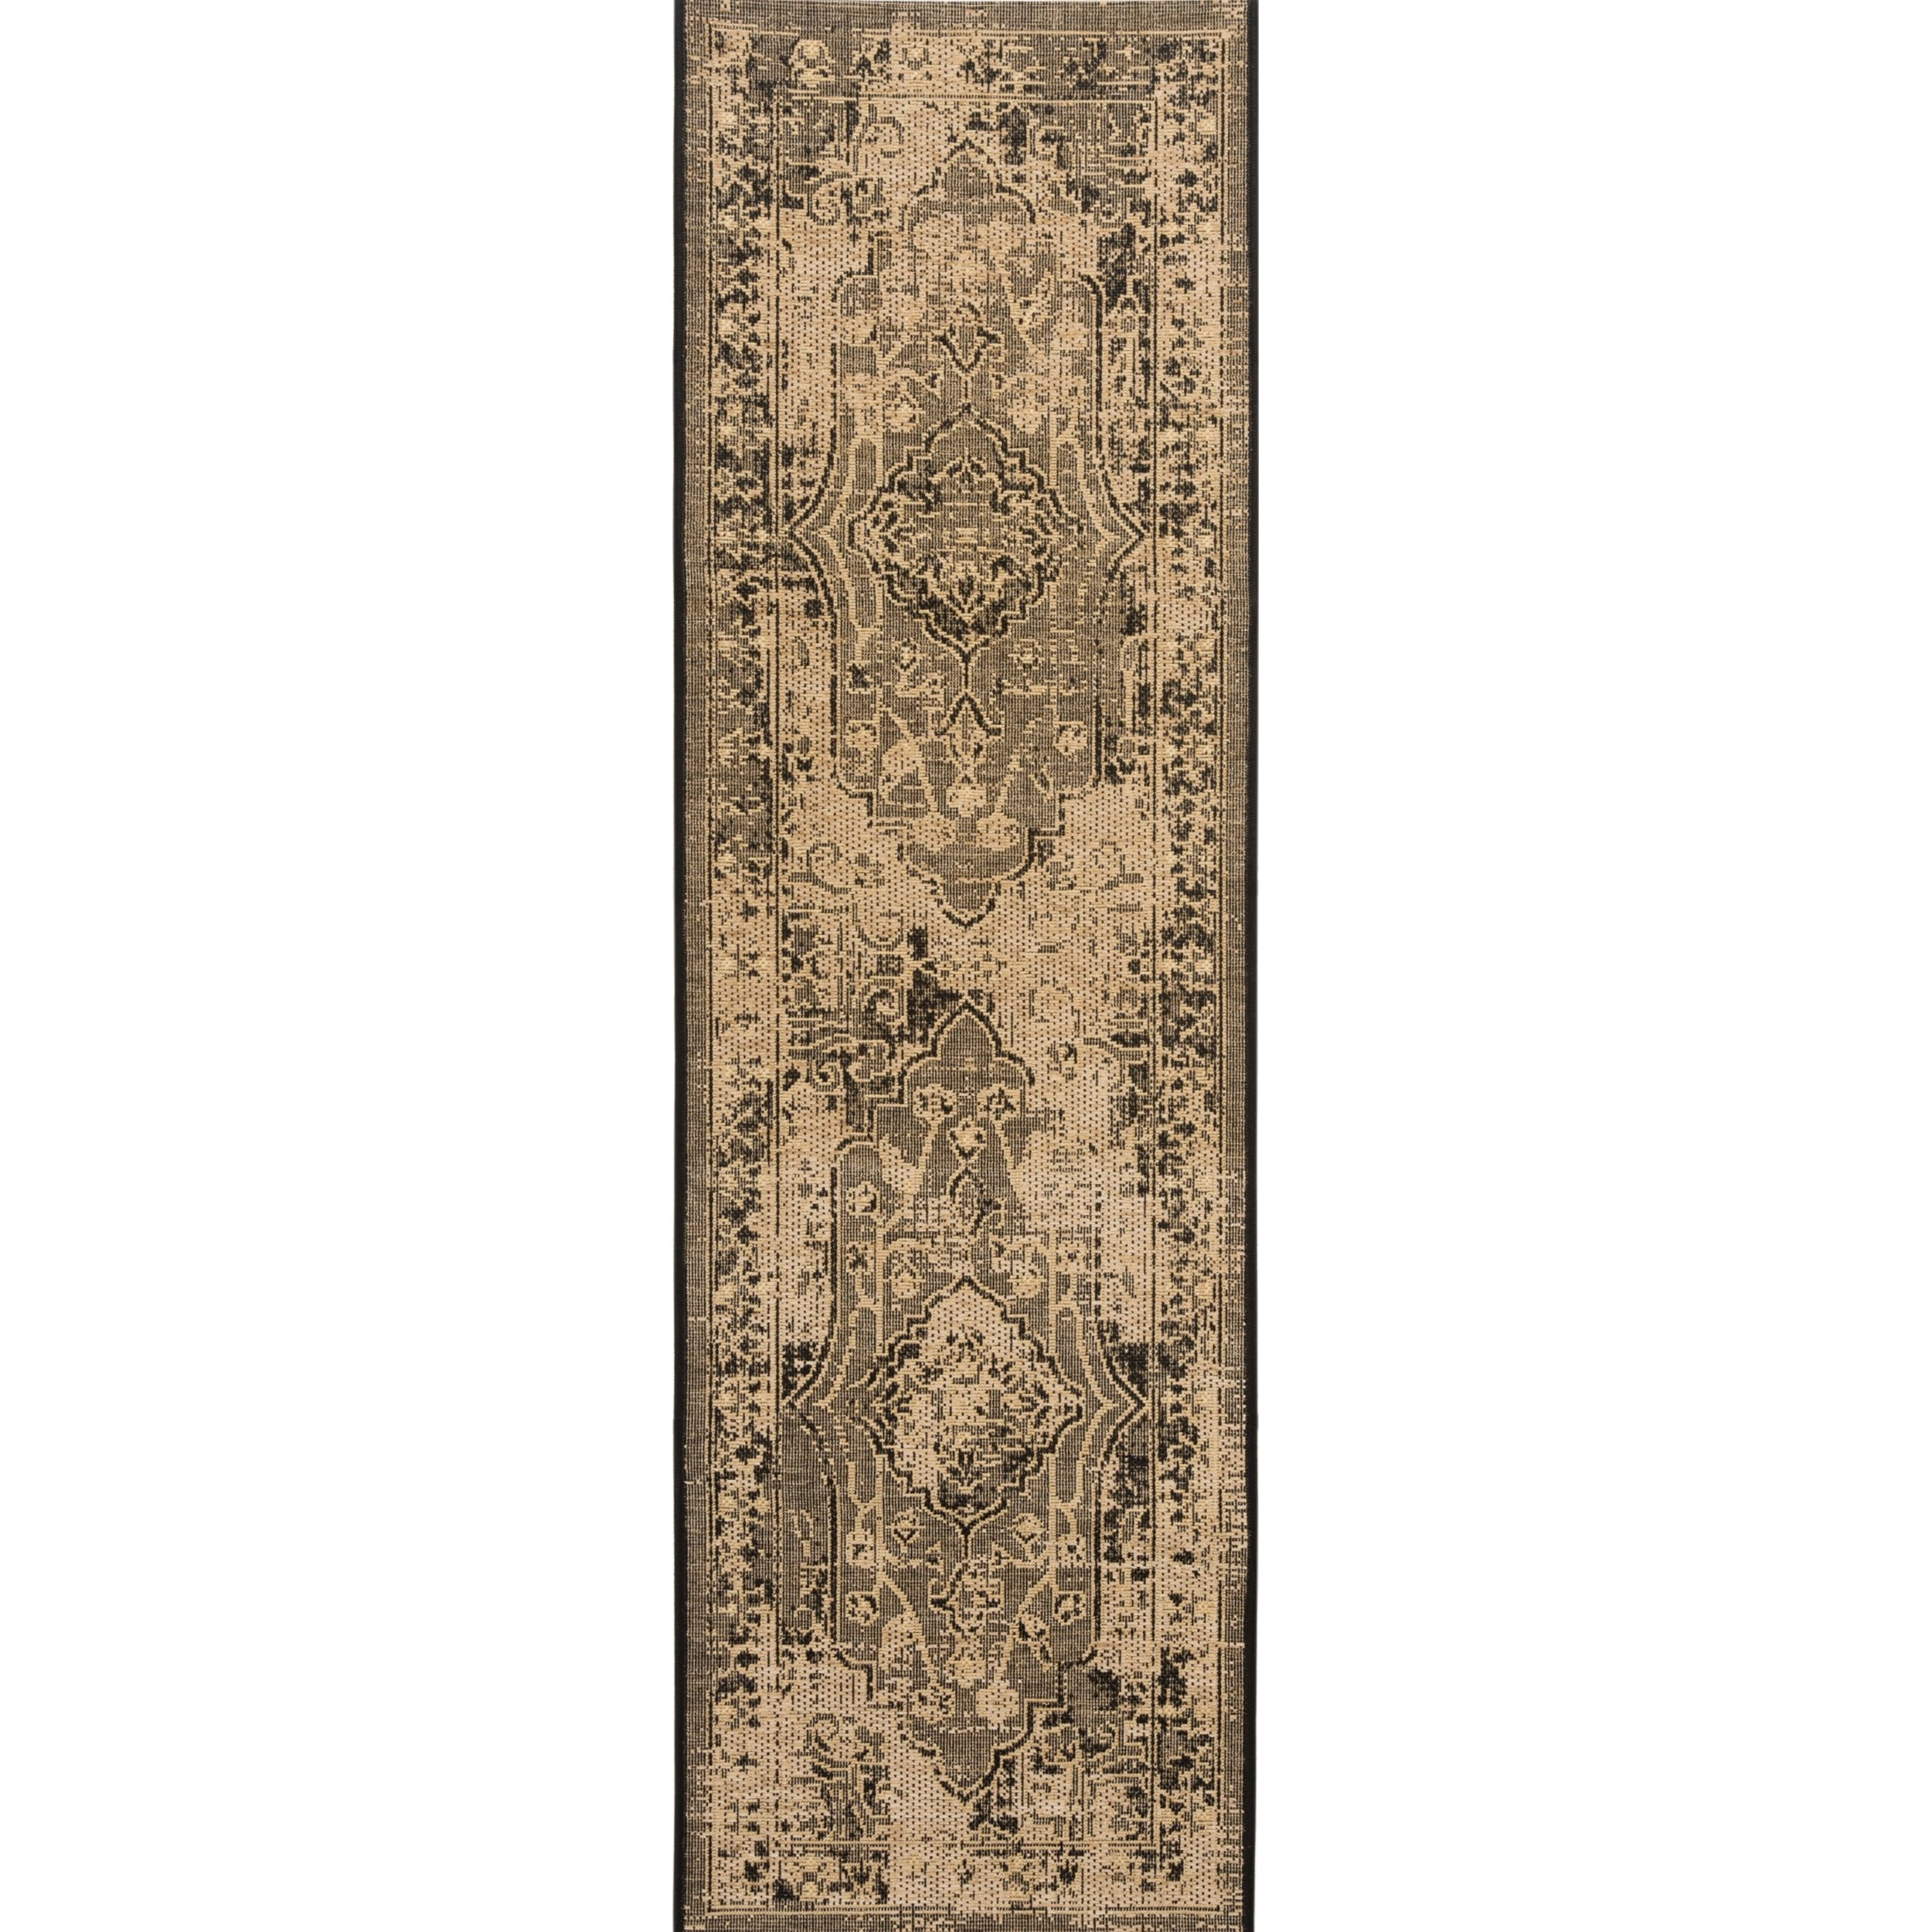 Safavieh Palazzo Collection PAL128-16211 Light Grey and Grey Runner (2' x 7'3'')